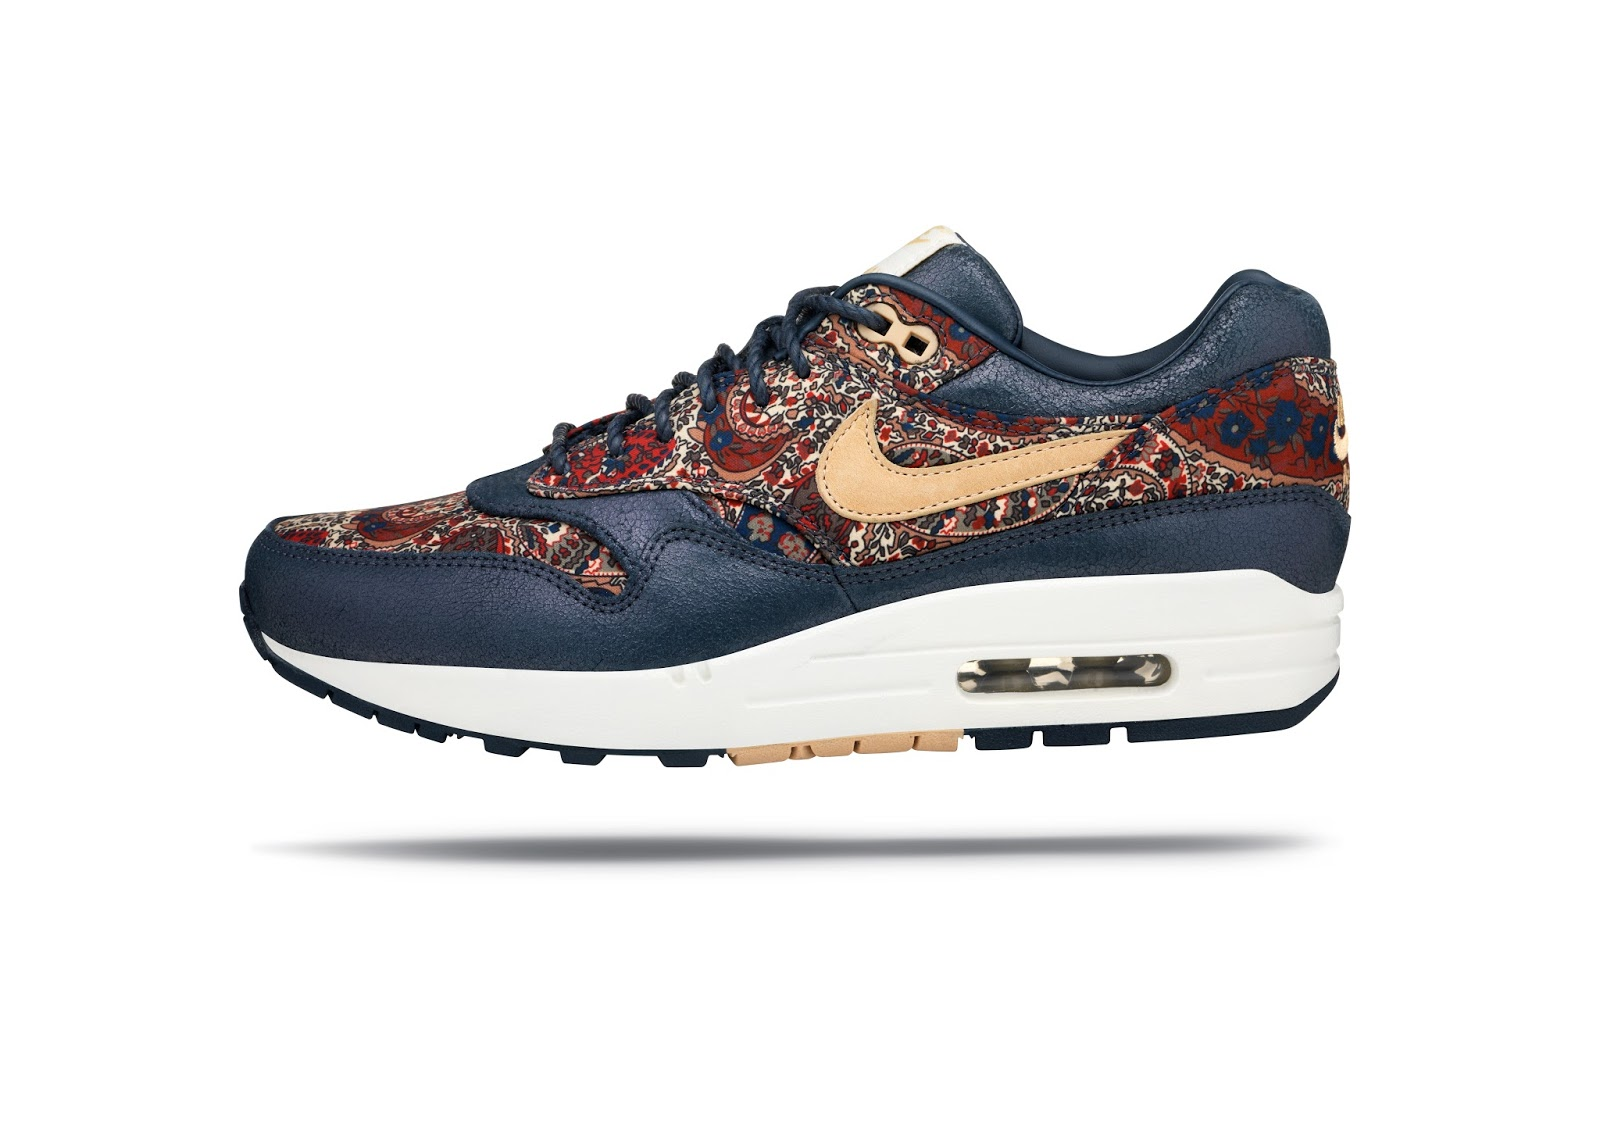 NIKE  and LIBERTY PRINTS Dazzling COLLABORATIONS AIR MAX+ WEDGE  NIKE  9cf40f